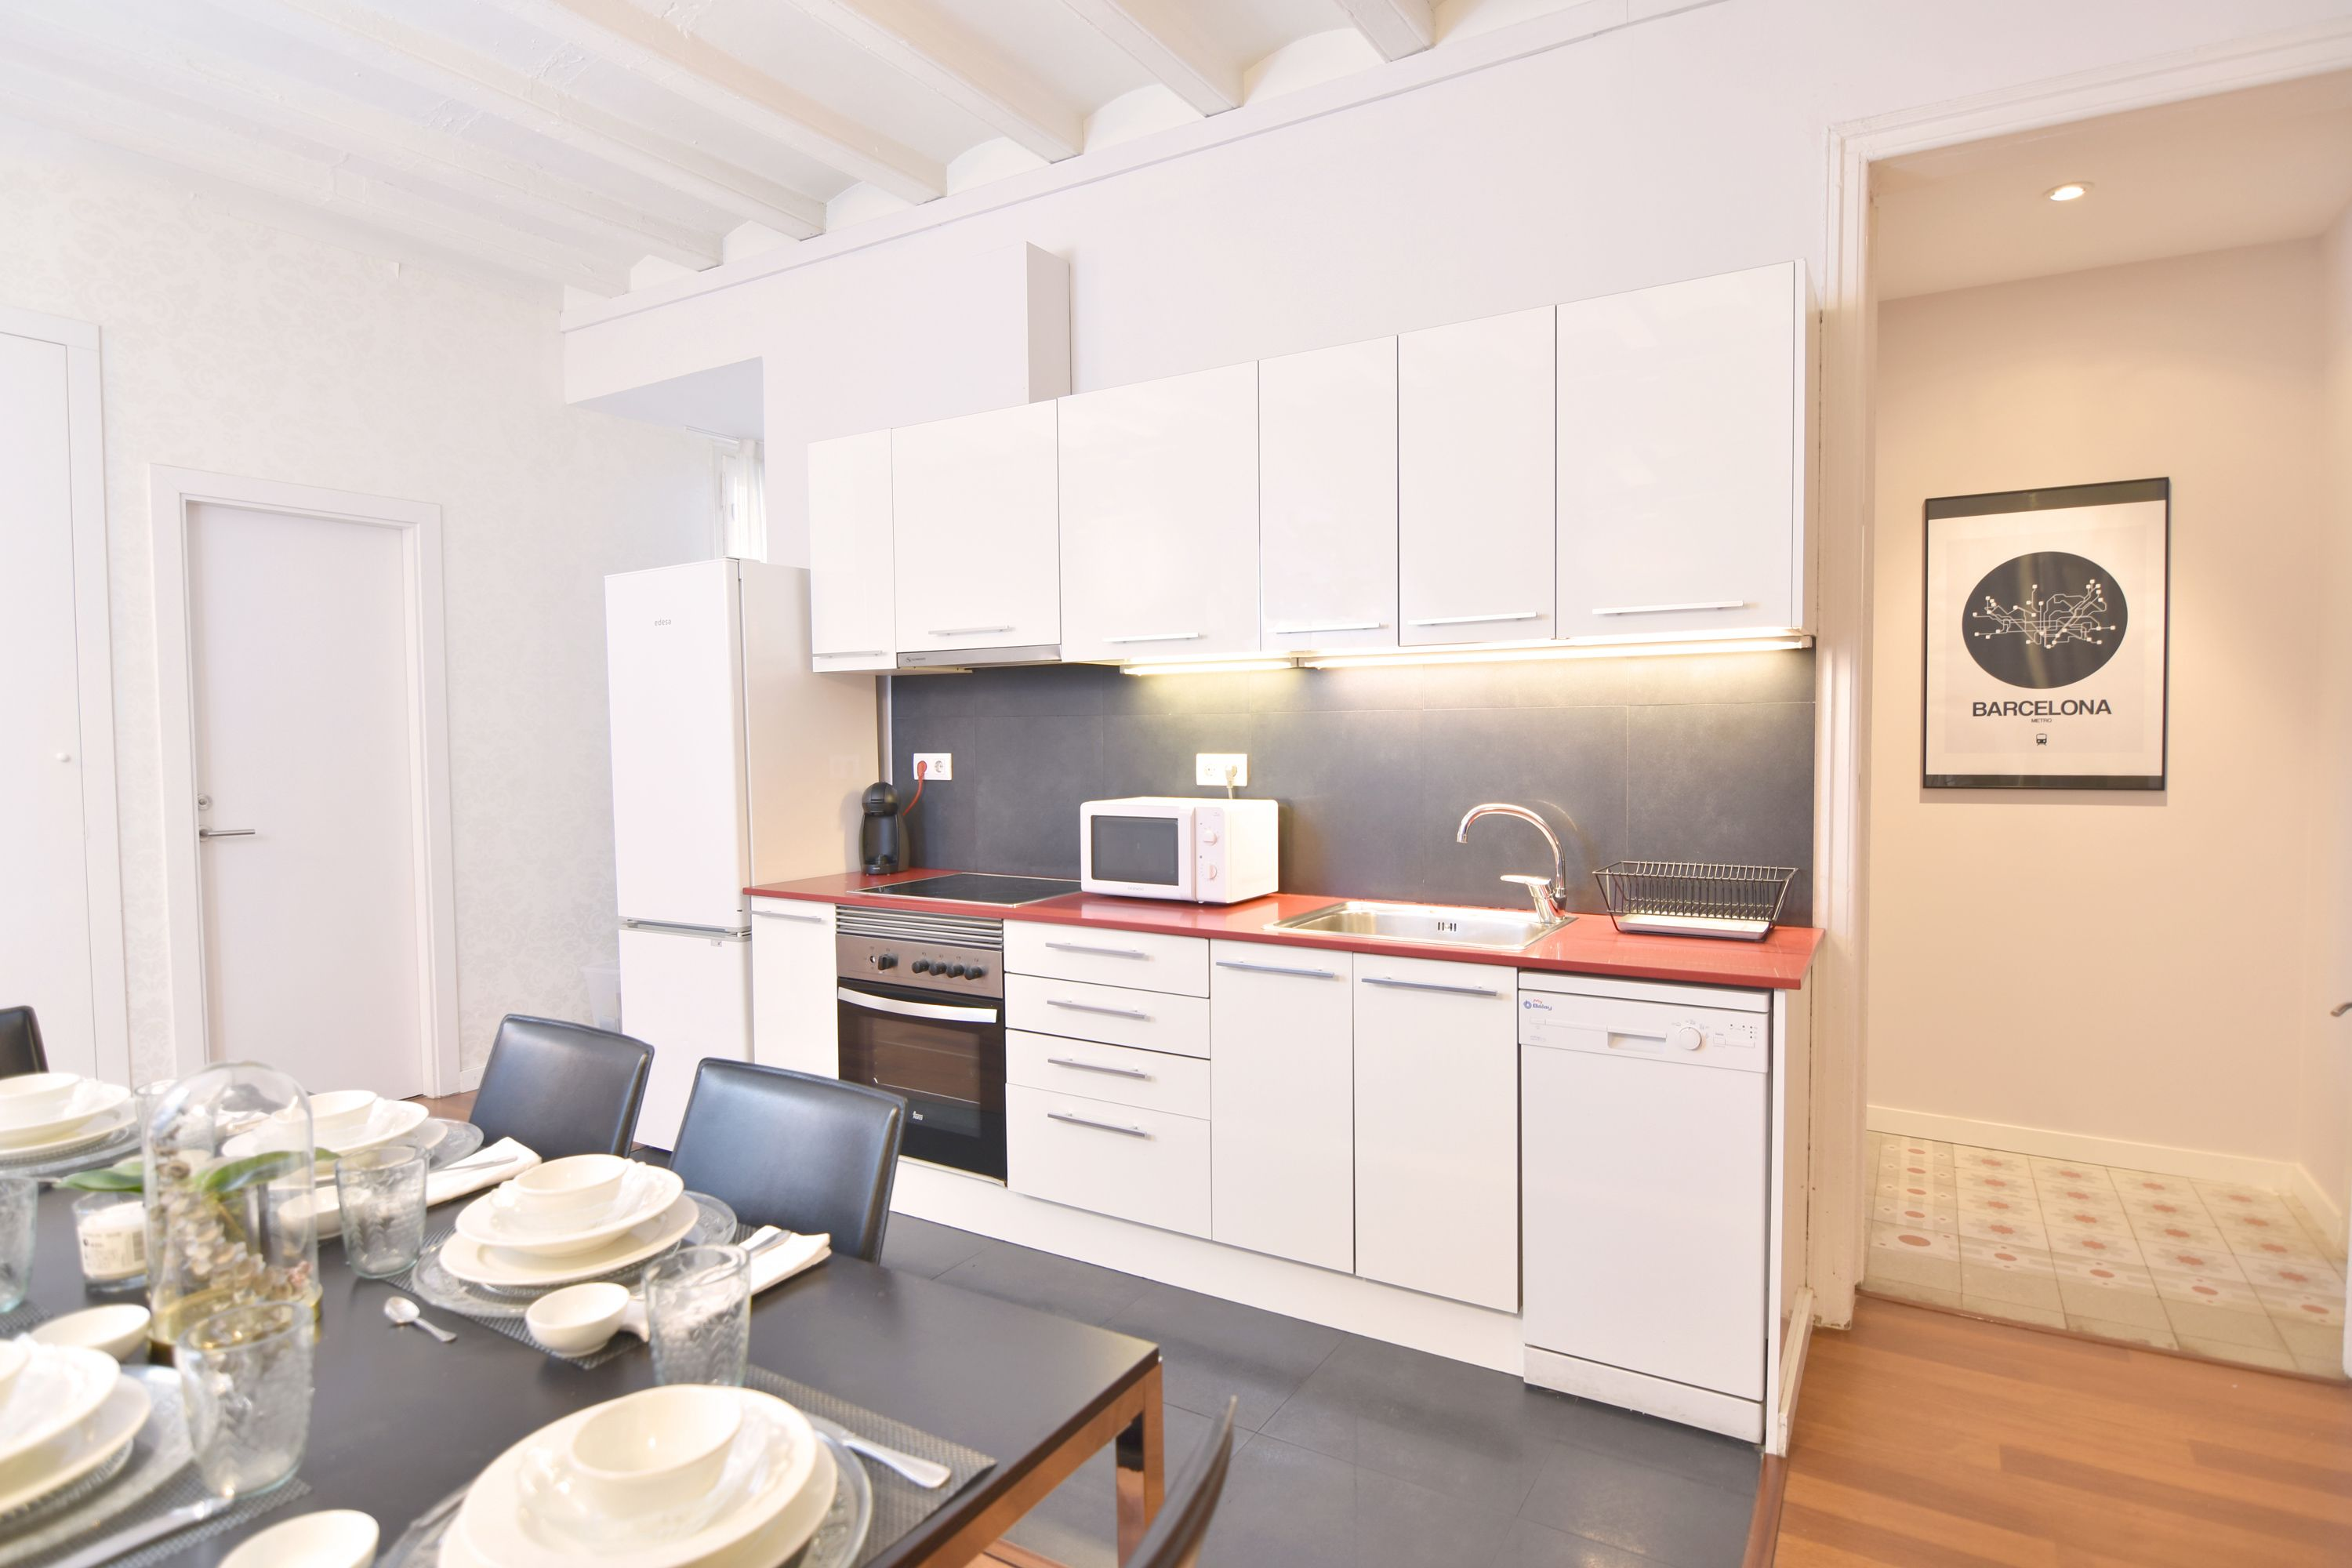 9. Cocina Comedor - Kitchen and Dining room | 1840 Apartments